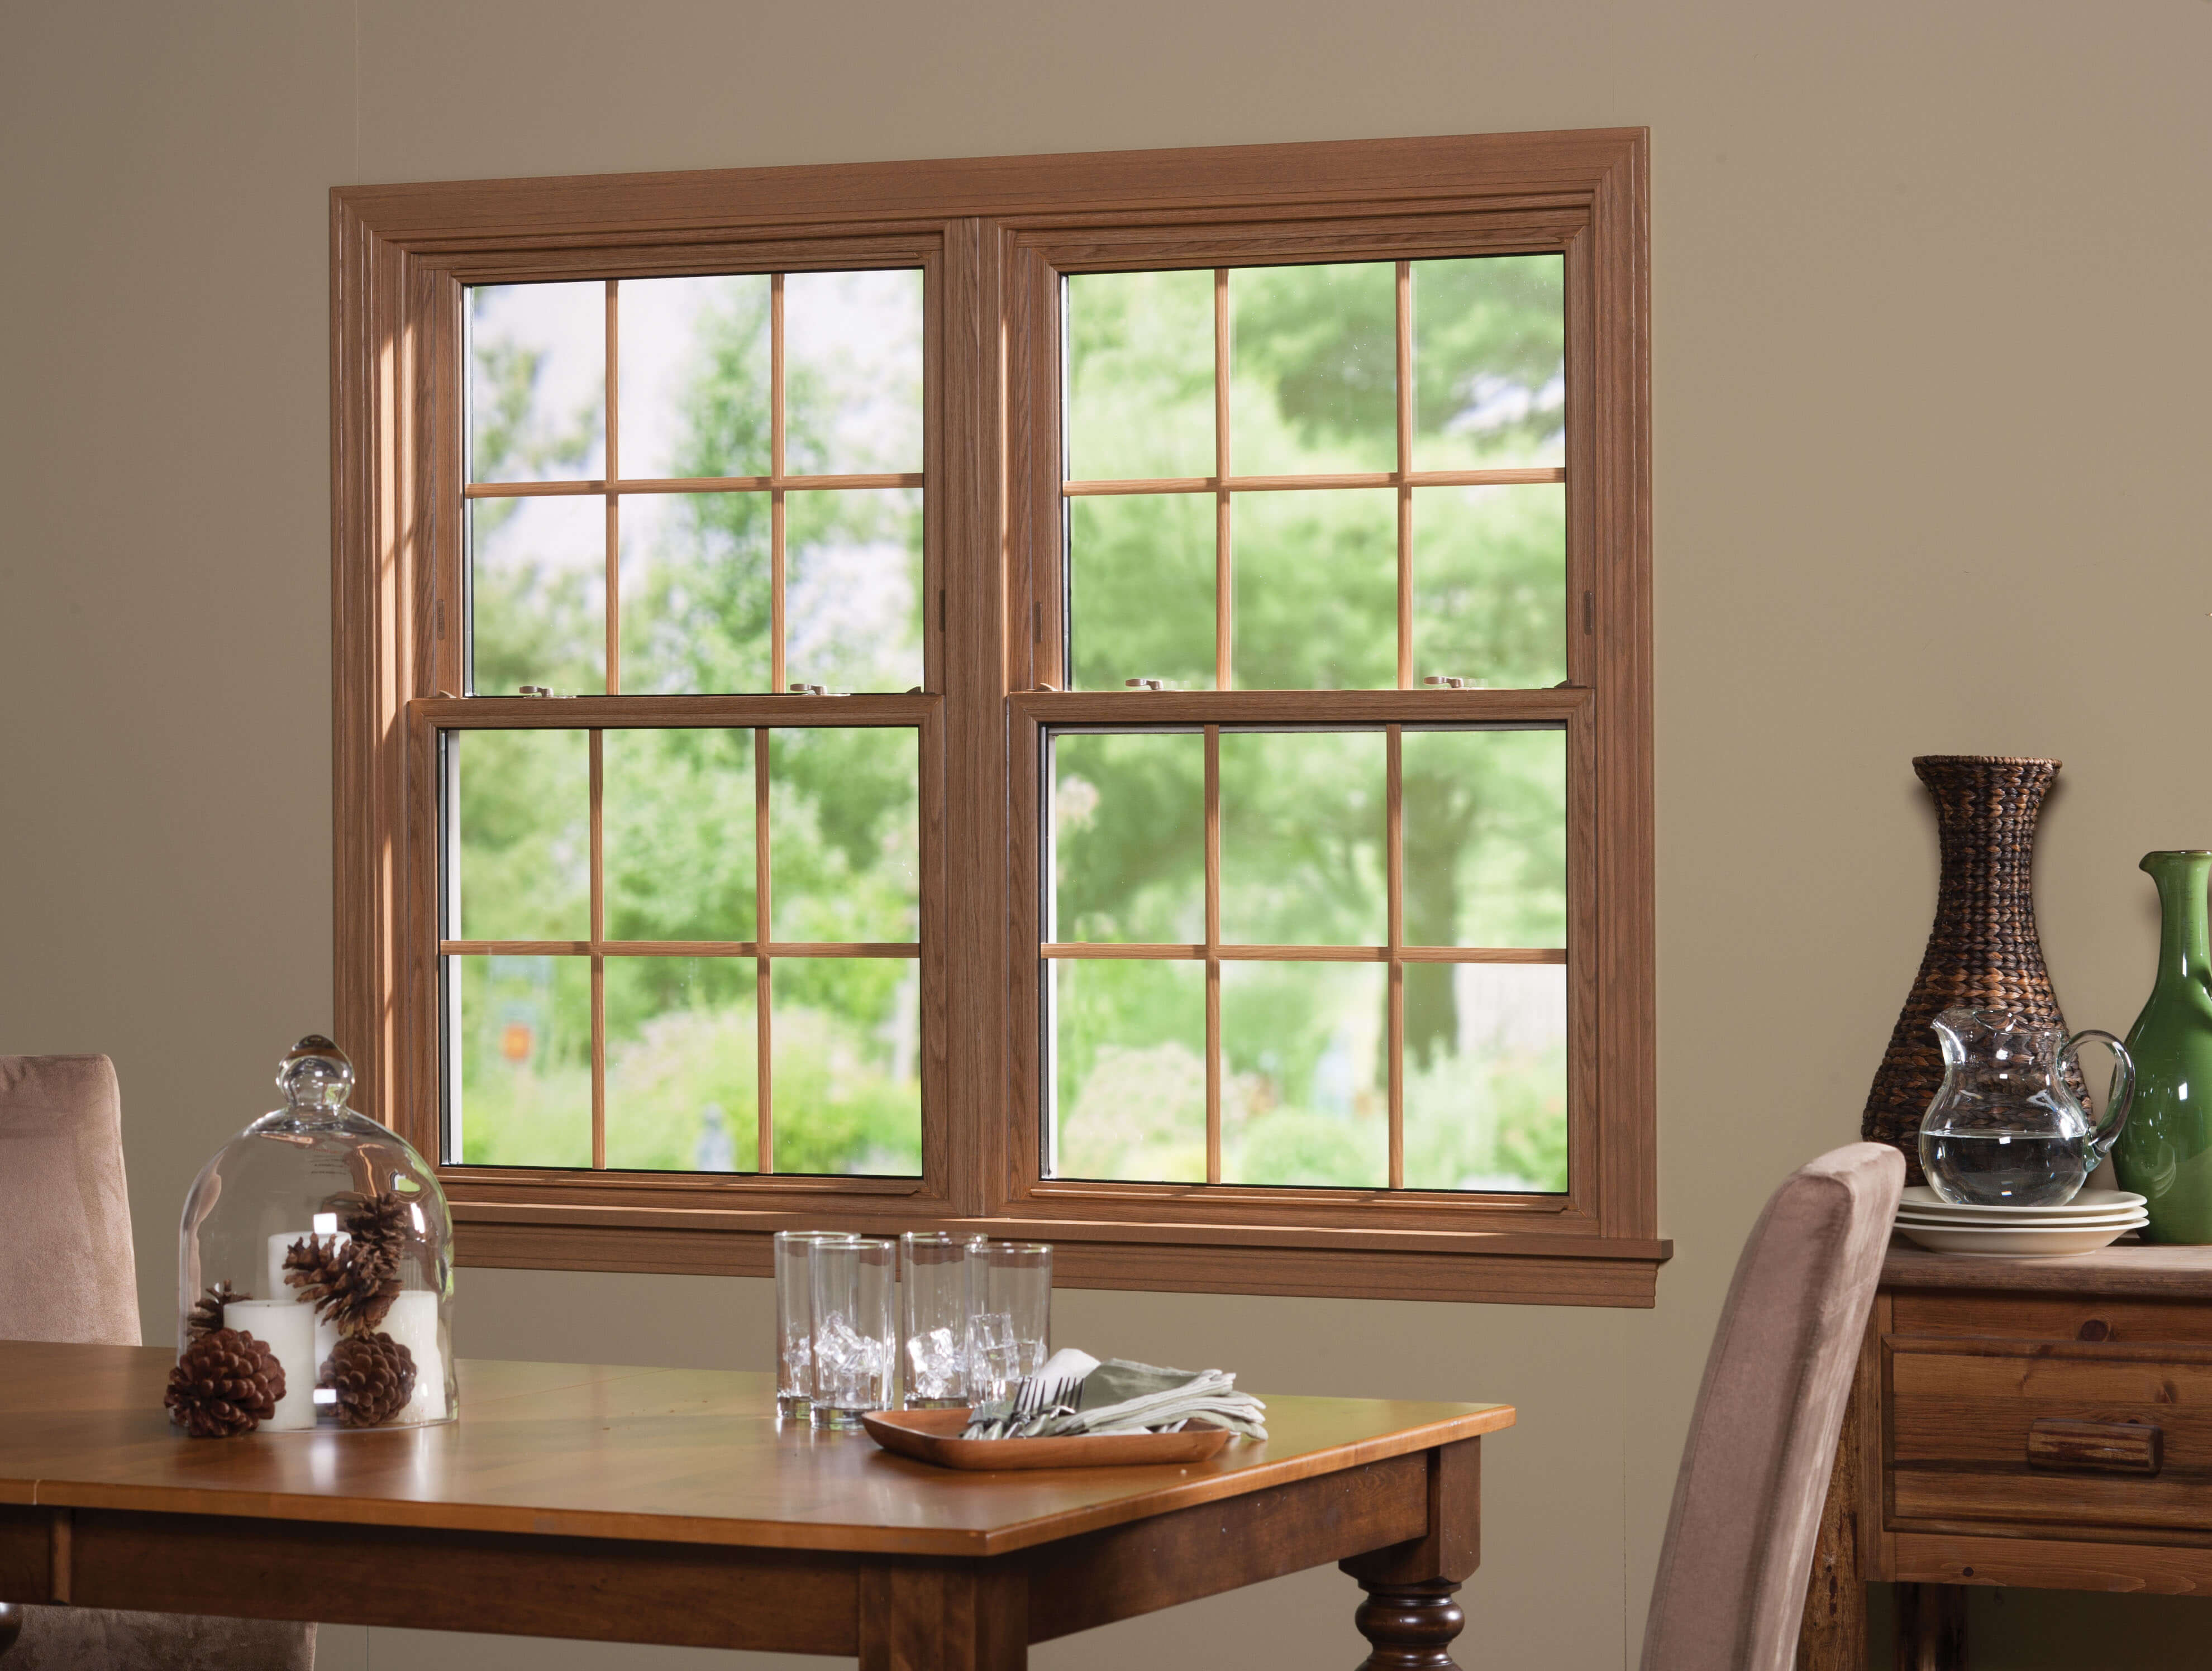 Vinyl windows with sophisticated styling of wood windows come in dozens of decorative options